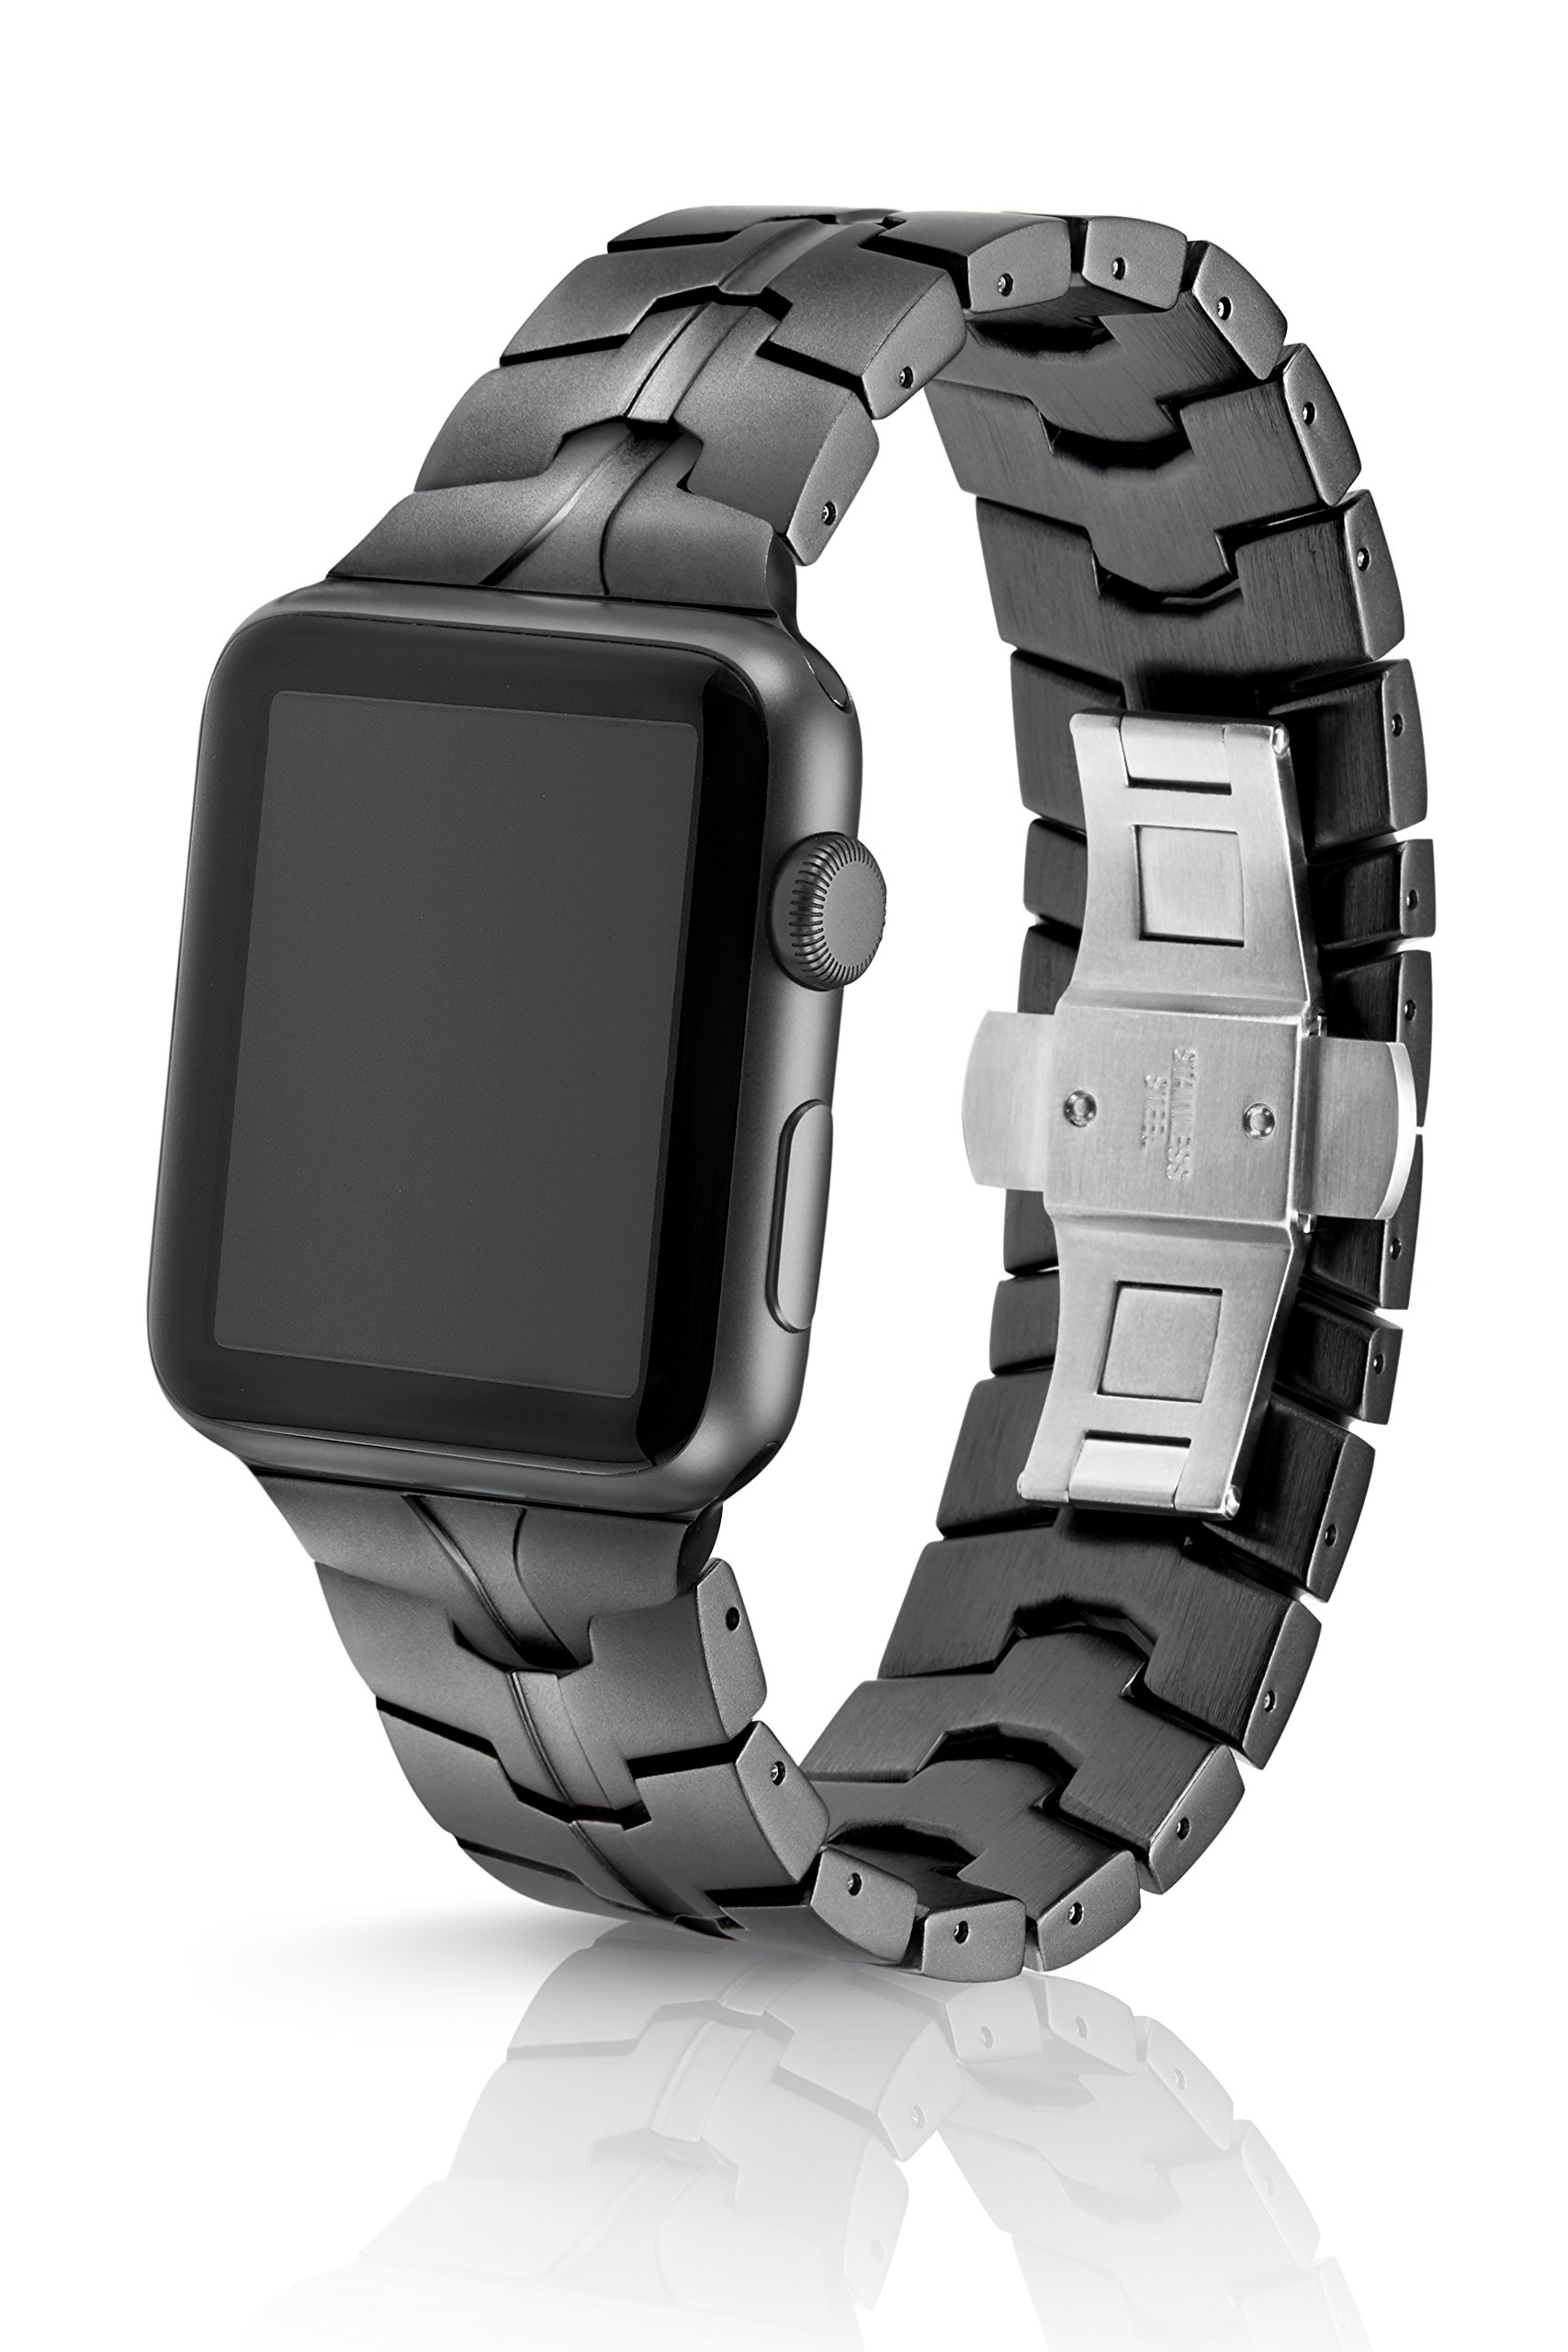 42/44mm JUUK Cosmic Grey Vitero Premium Watch Band Made for The Apple Watch, Using Aircraft Grade, Hard Anodized 6000 Series Aluminum with a Solid Stainless Steel Butterfly deployant Buckle (Matte)